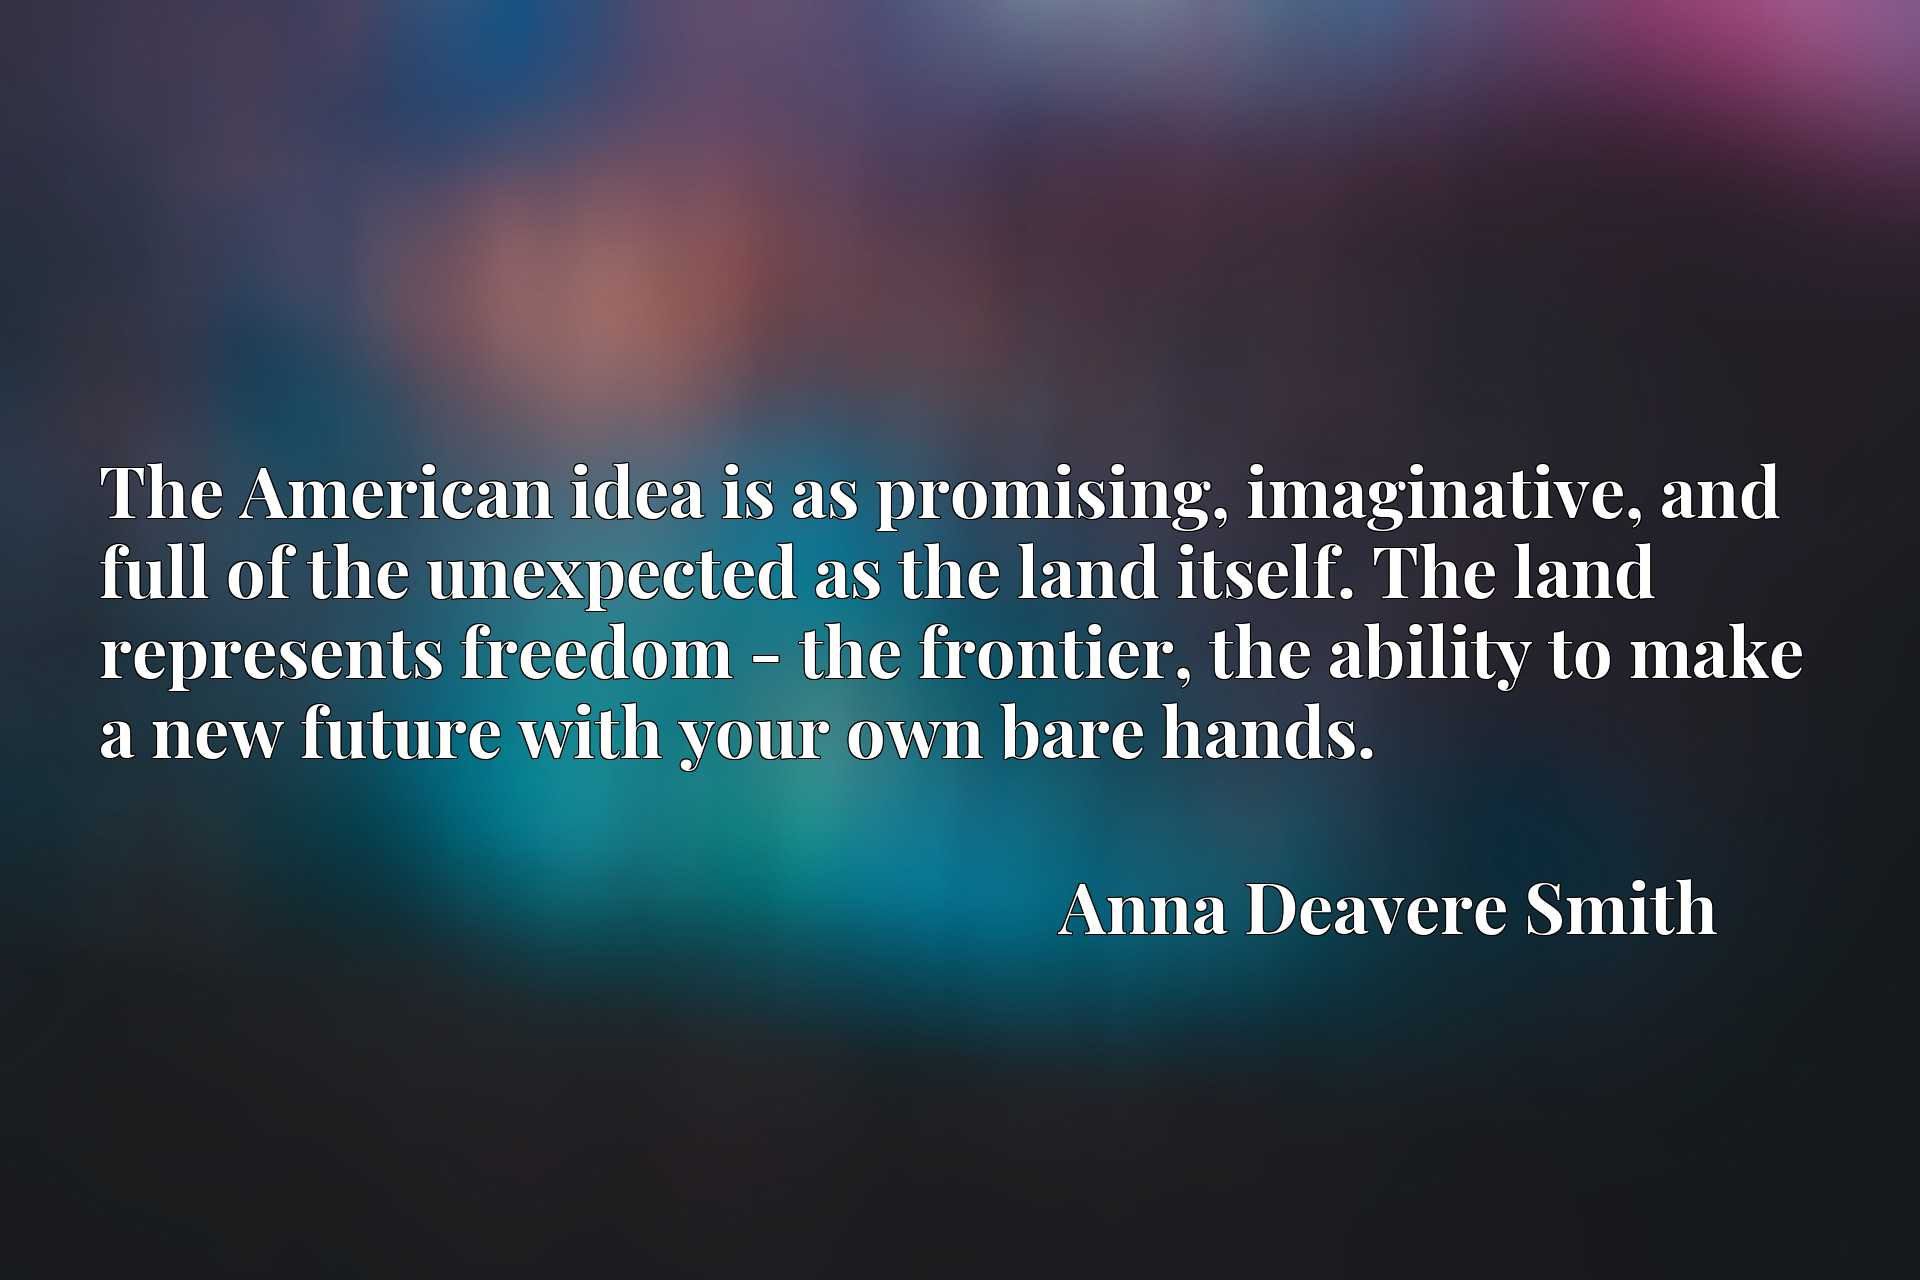 The American idea is as promising, imaginative, and full of the unexpected as the land itself. The land represents freedom - the frontier, the ability to make a new future with your own bare hands.